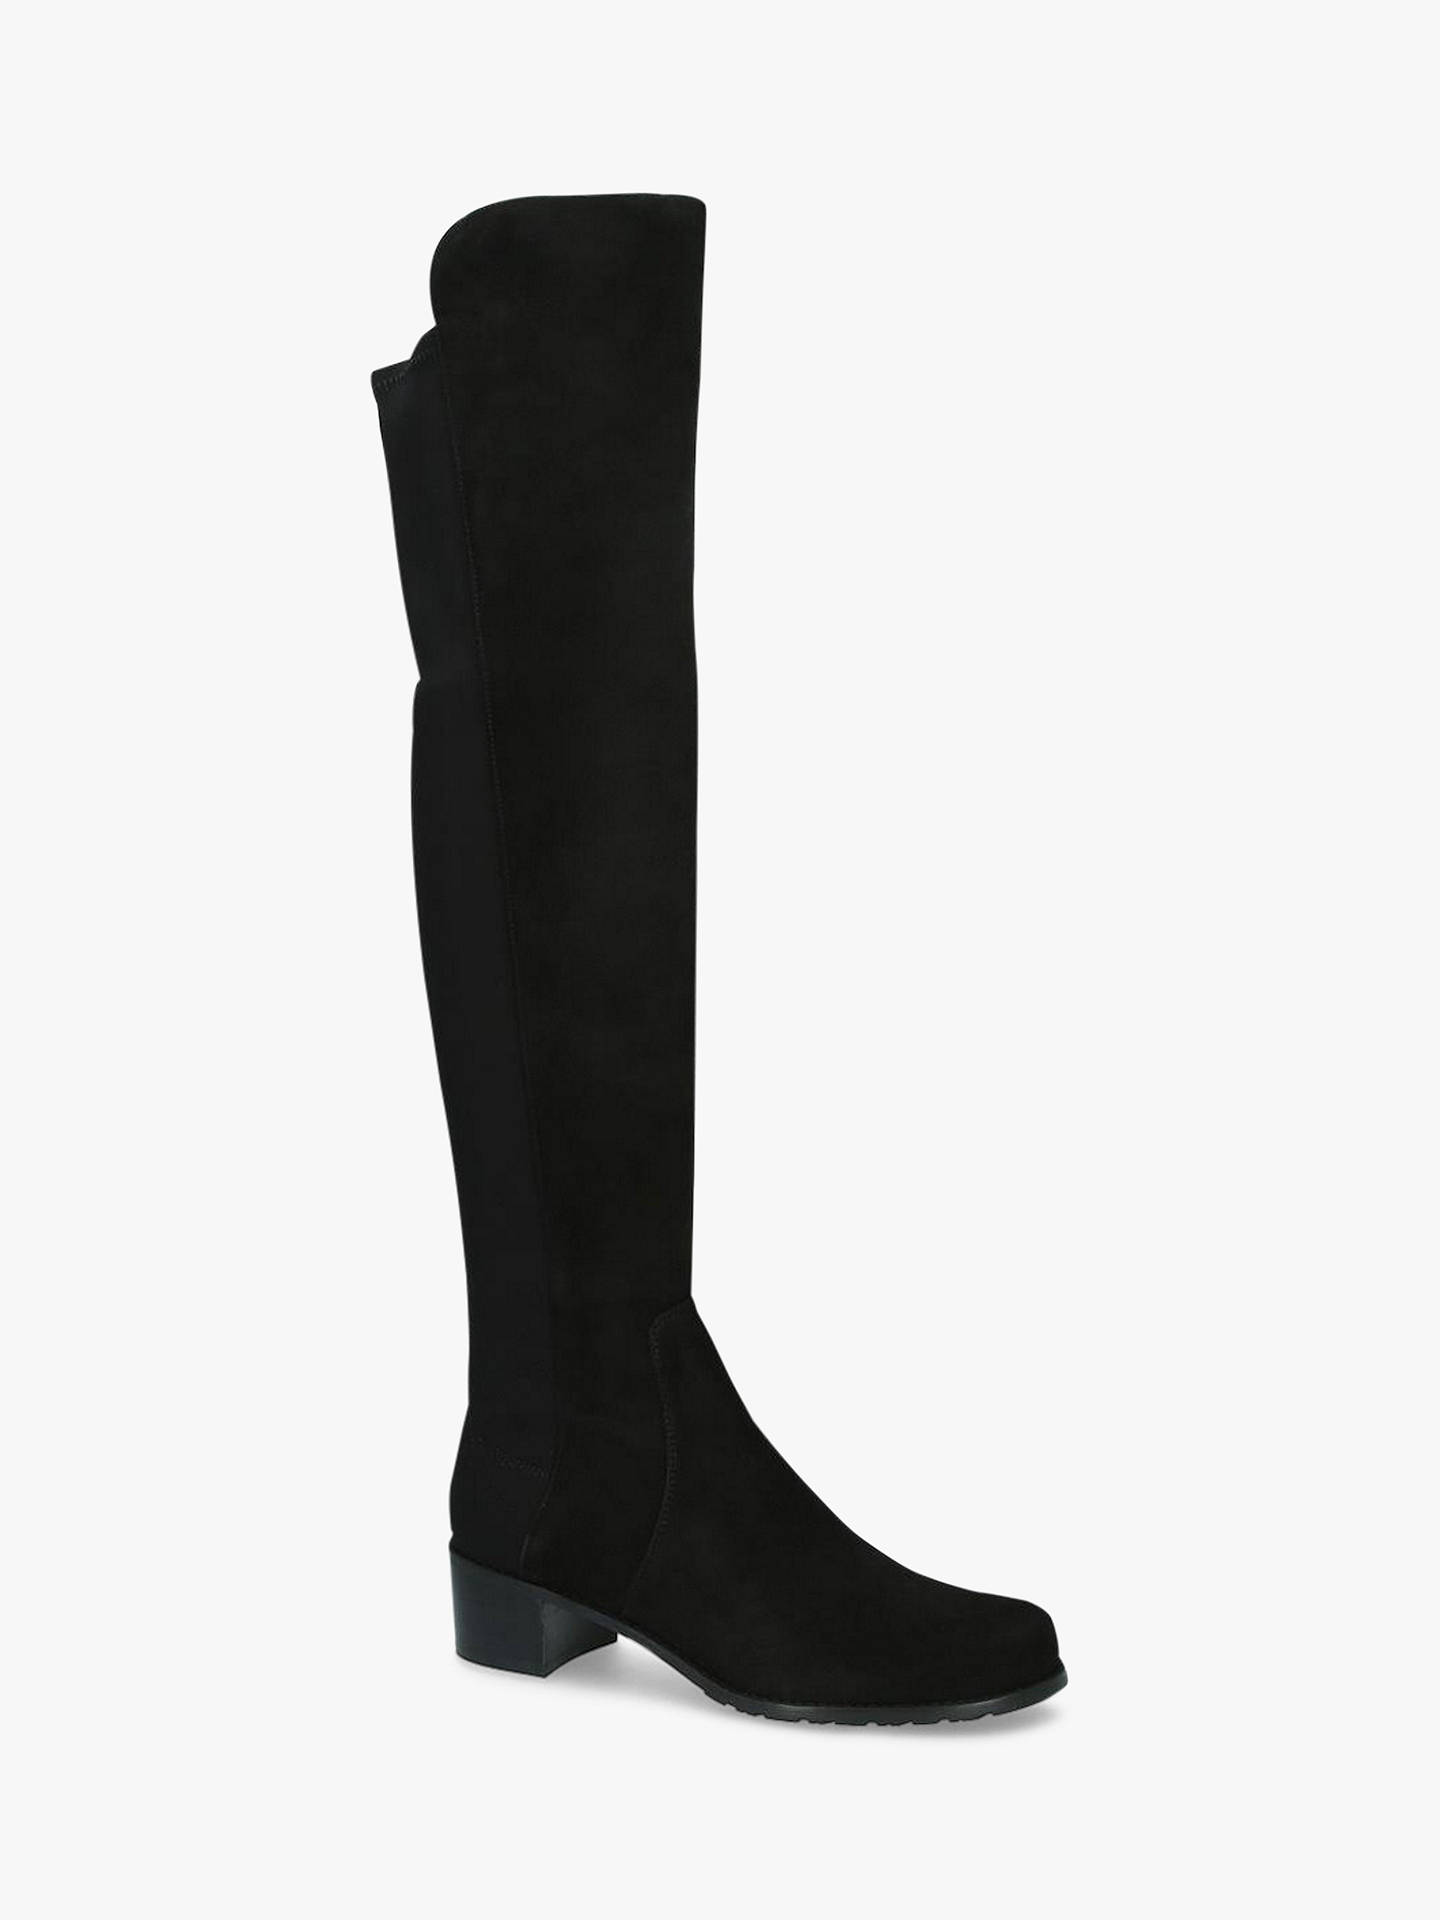 Buy Stuart Weitzman Reserve Block Heel Knee High Boots, Black Suede, 2 Online at johnlewis.com